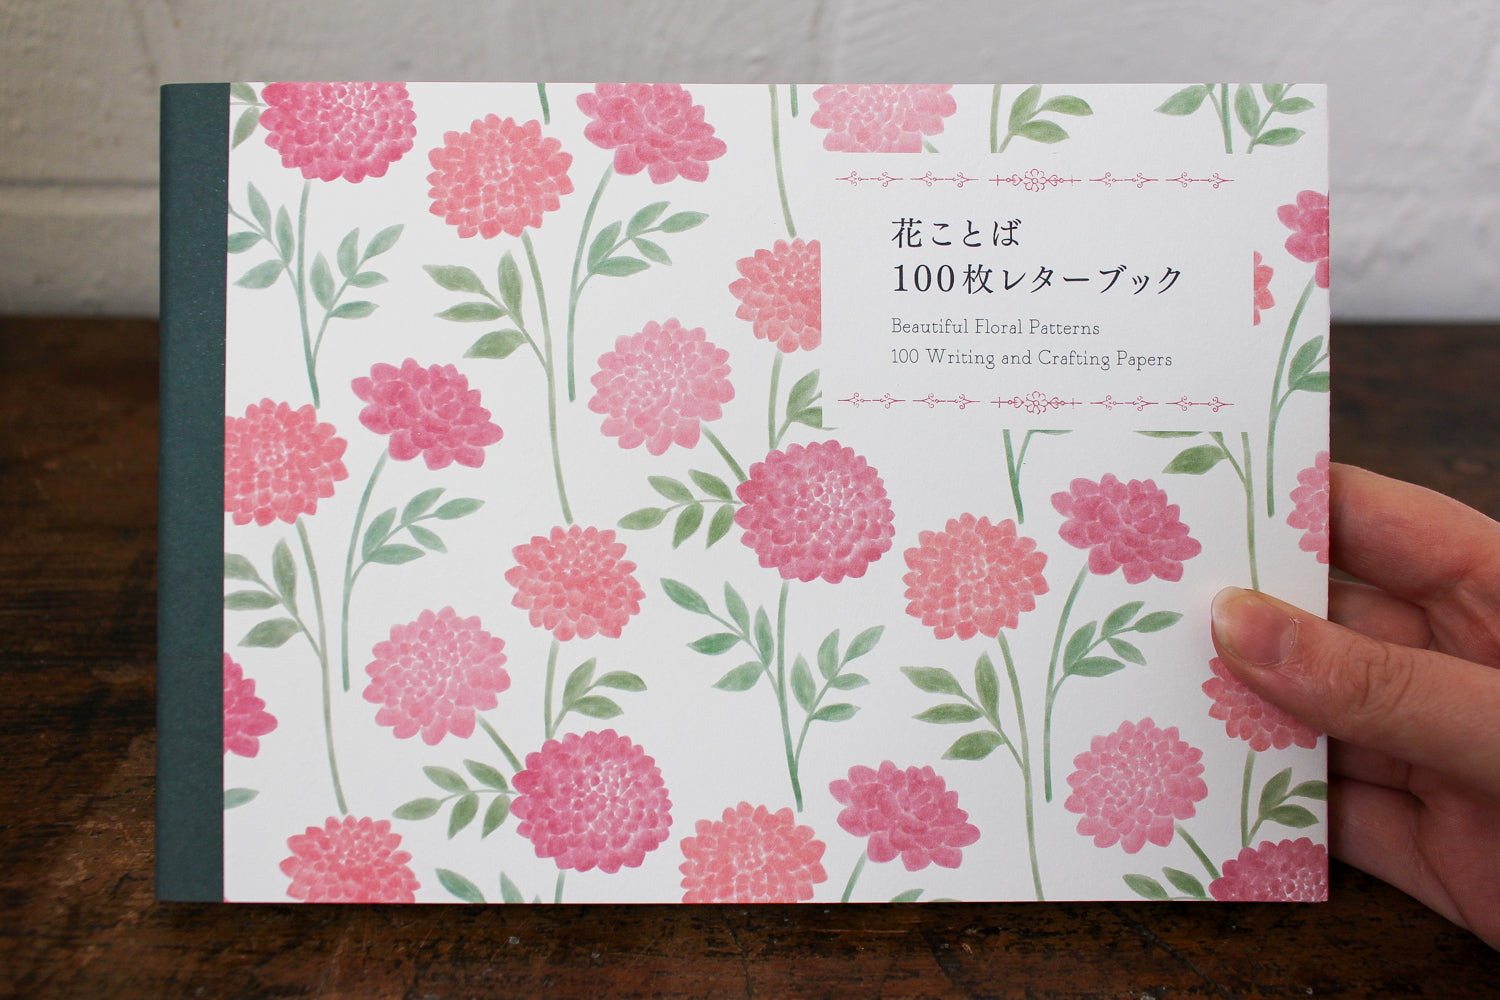 100 Writing and Crafting Papers: Beautiful Floral Patterns